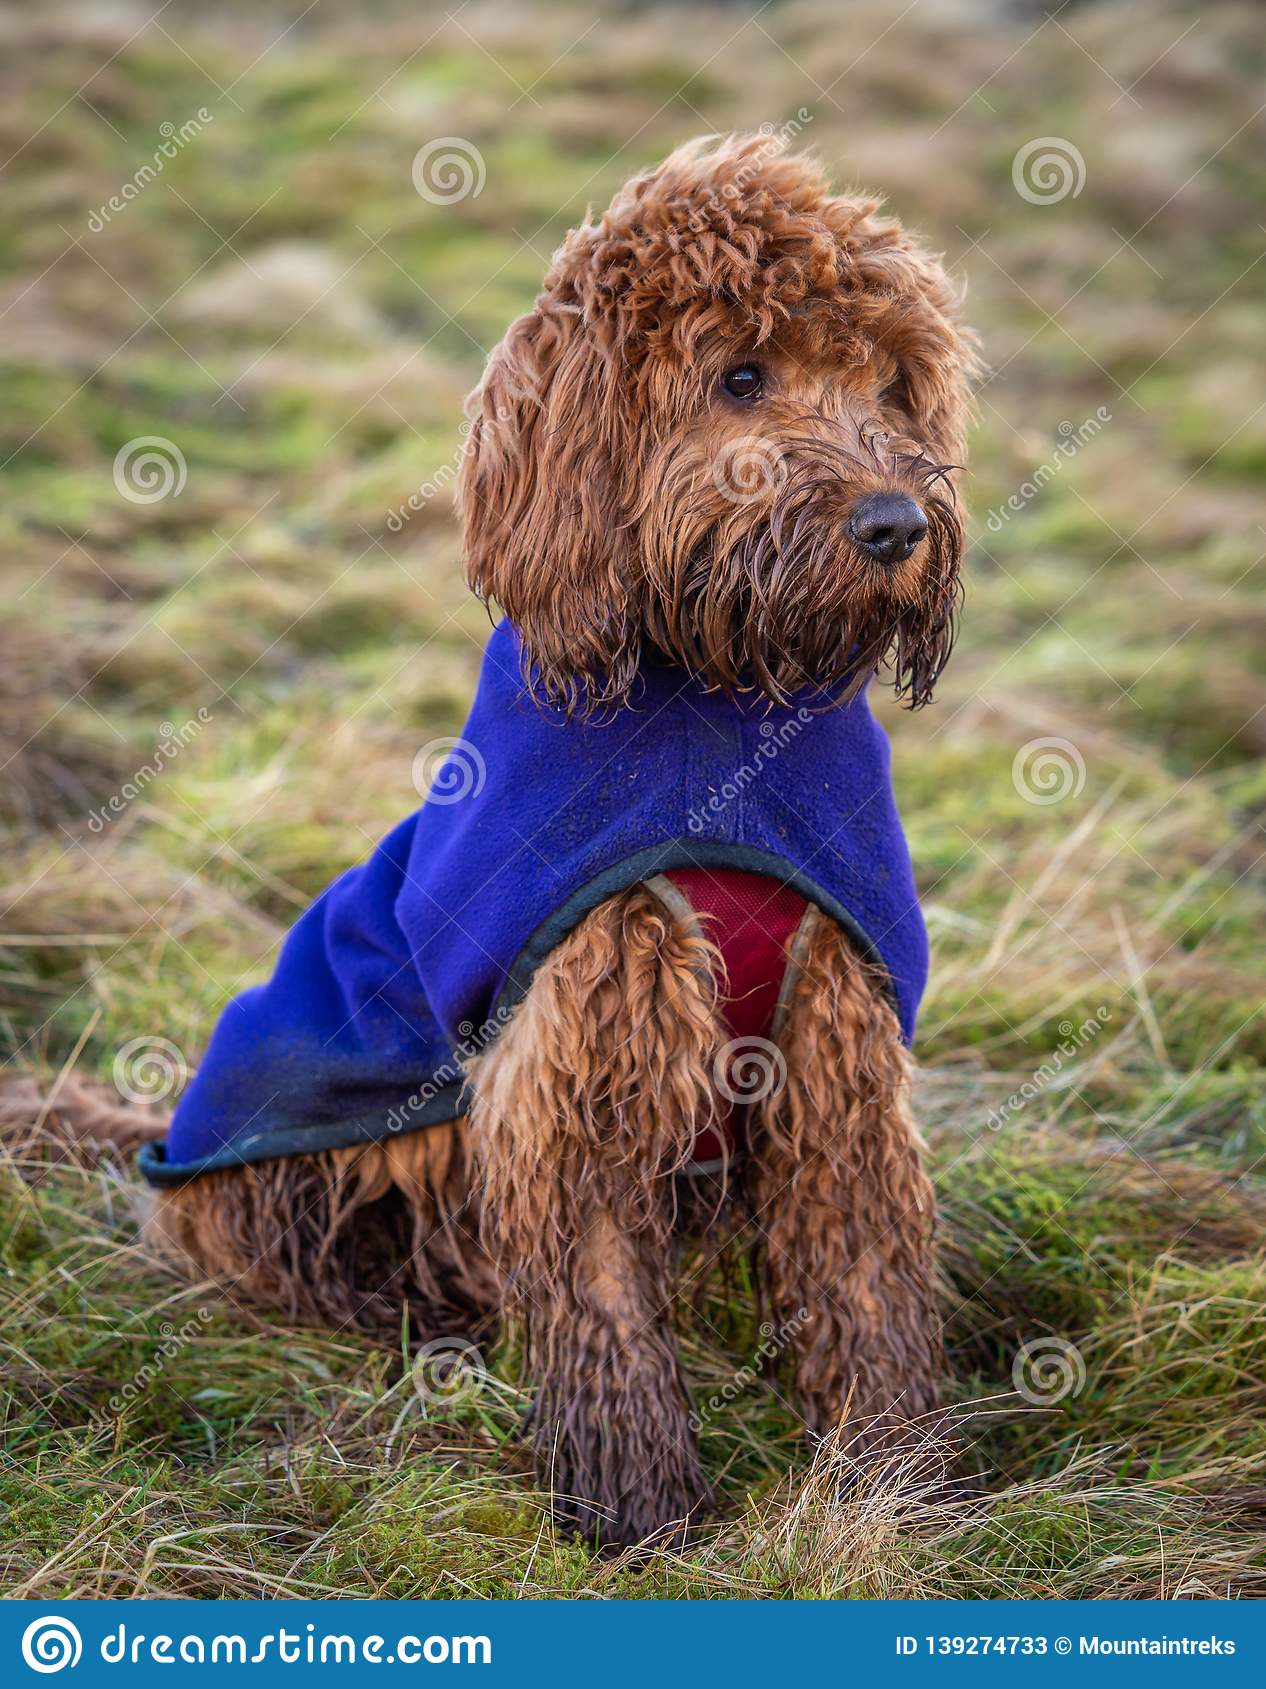 Red Cockapoo Puppy Sitting Outdoors Stock Image Image Of Adventure Face 139274733